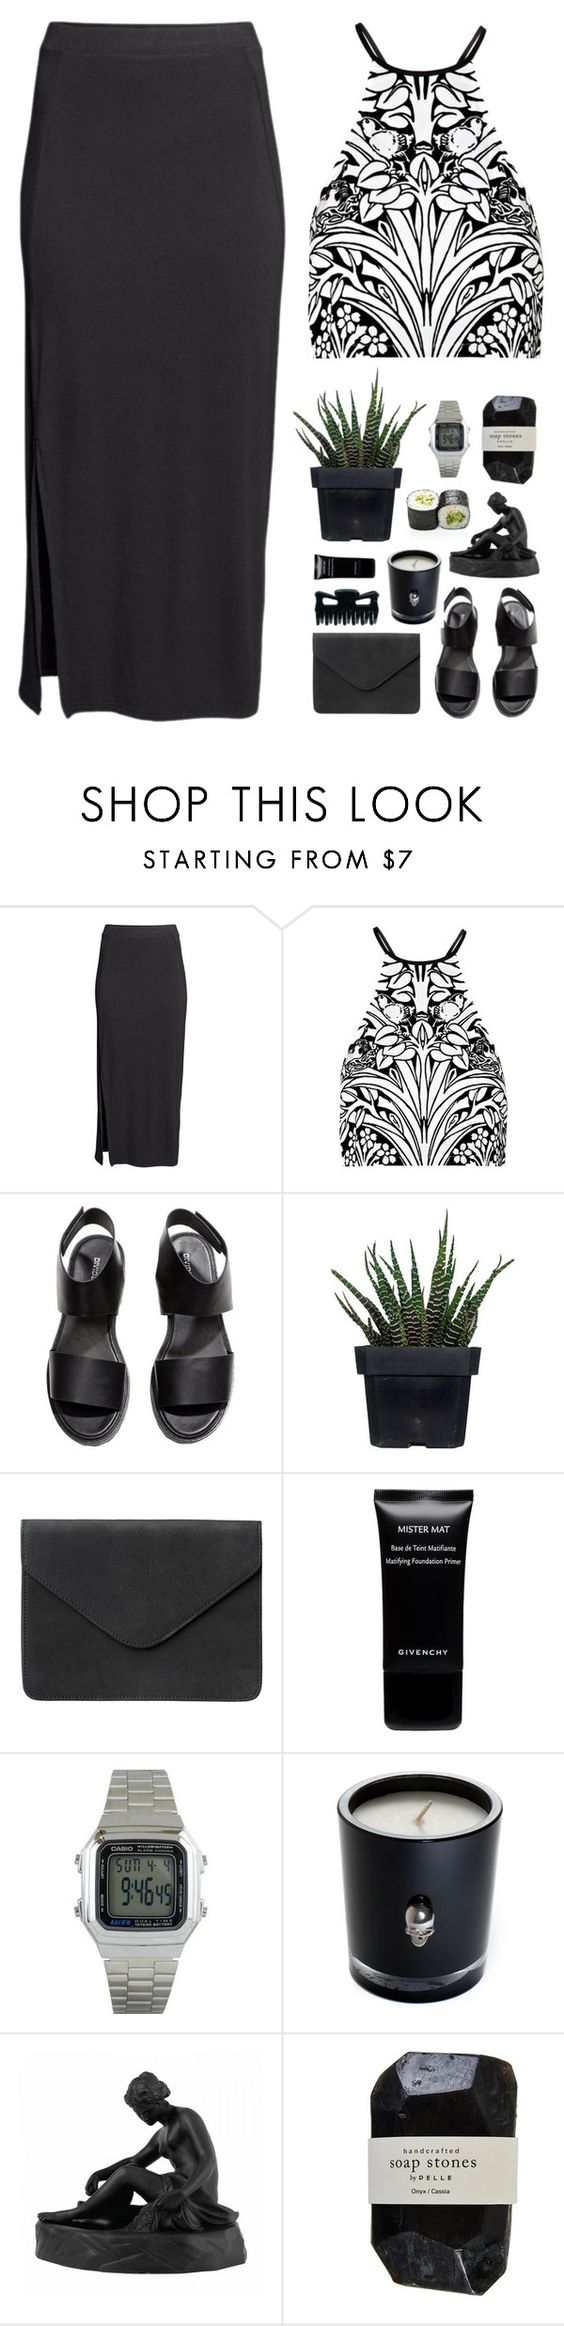 """""""' i just wanna look good for you. '"""" by m-balli ❤ liked on Polyvore featuring H&M, Alice McCall, Alöe, Givenchy, Casio, Lisa Carrier, Wedgwood and Cassia"""